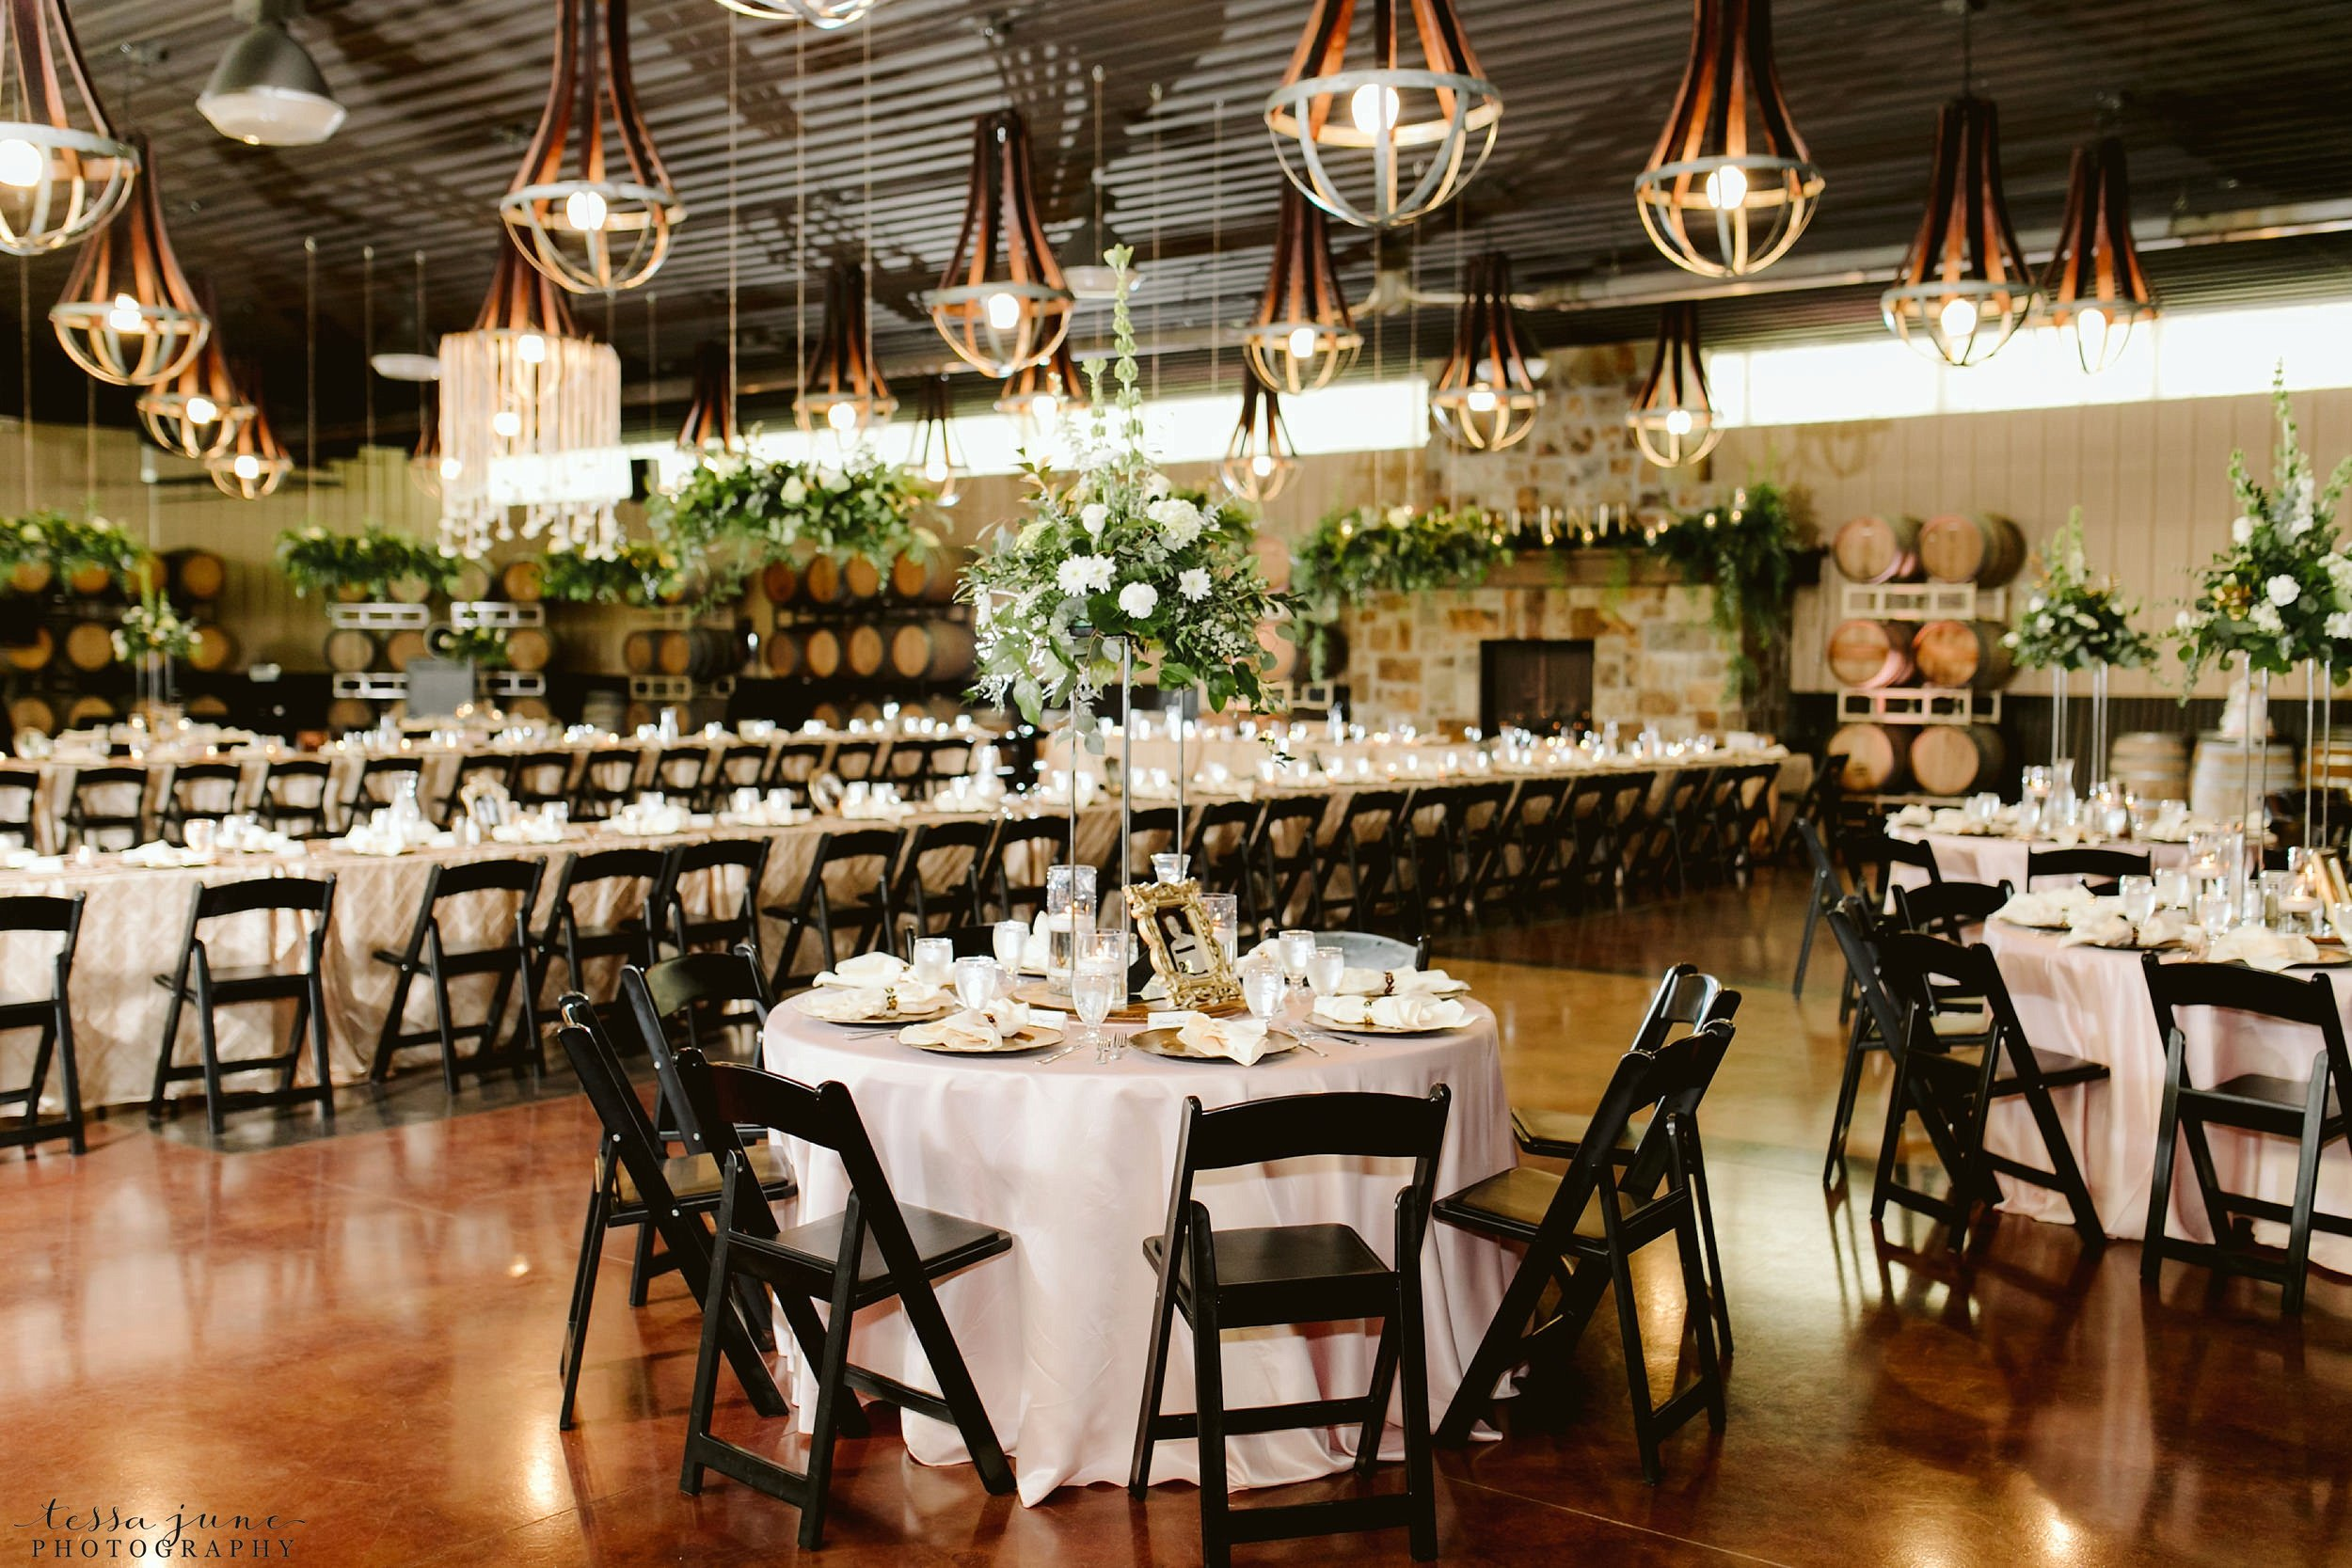 carlos-creek-winery-wedding-alexandria-minnesota-glam-elegant-floral-64.jpg